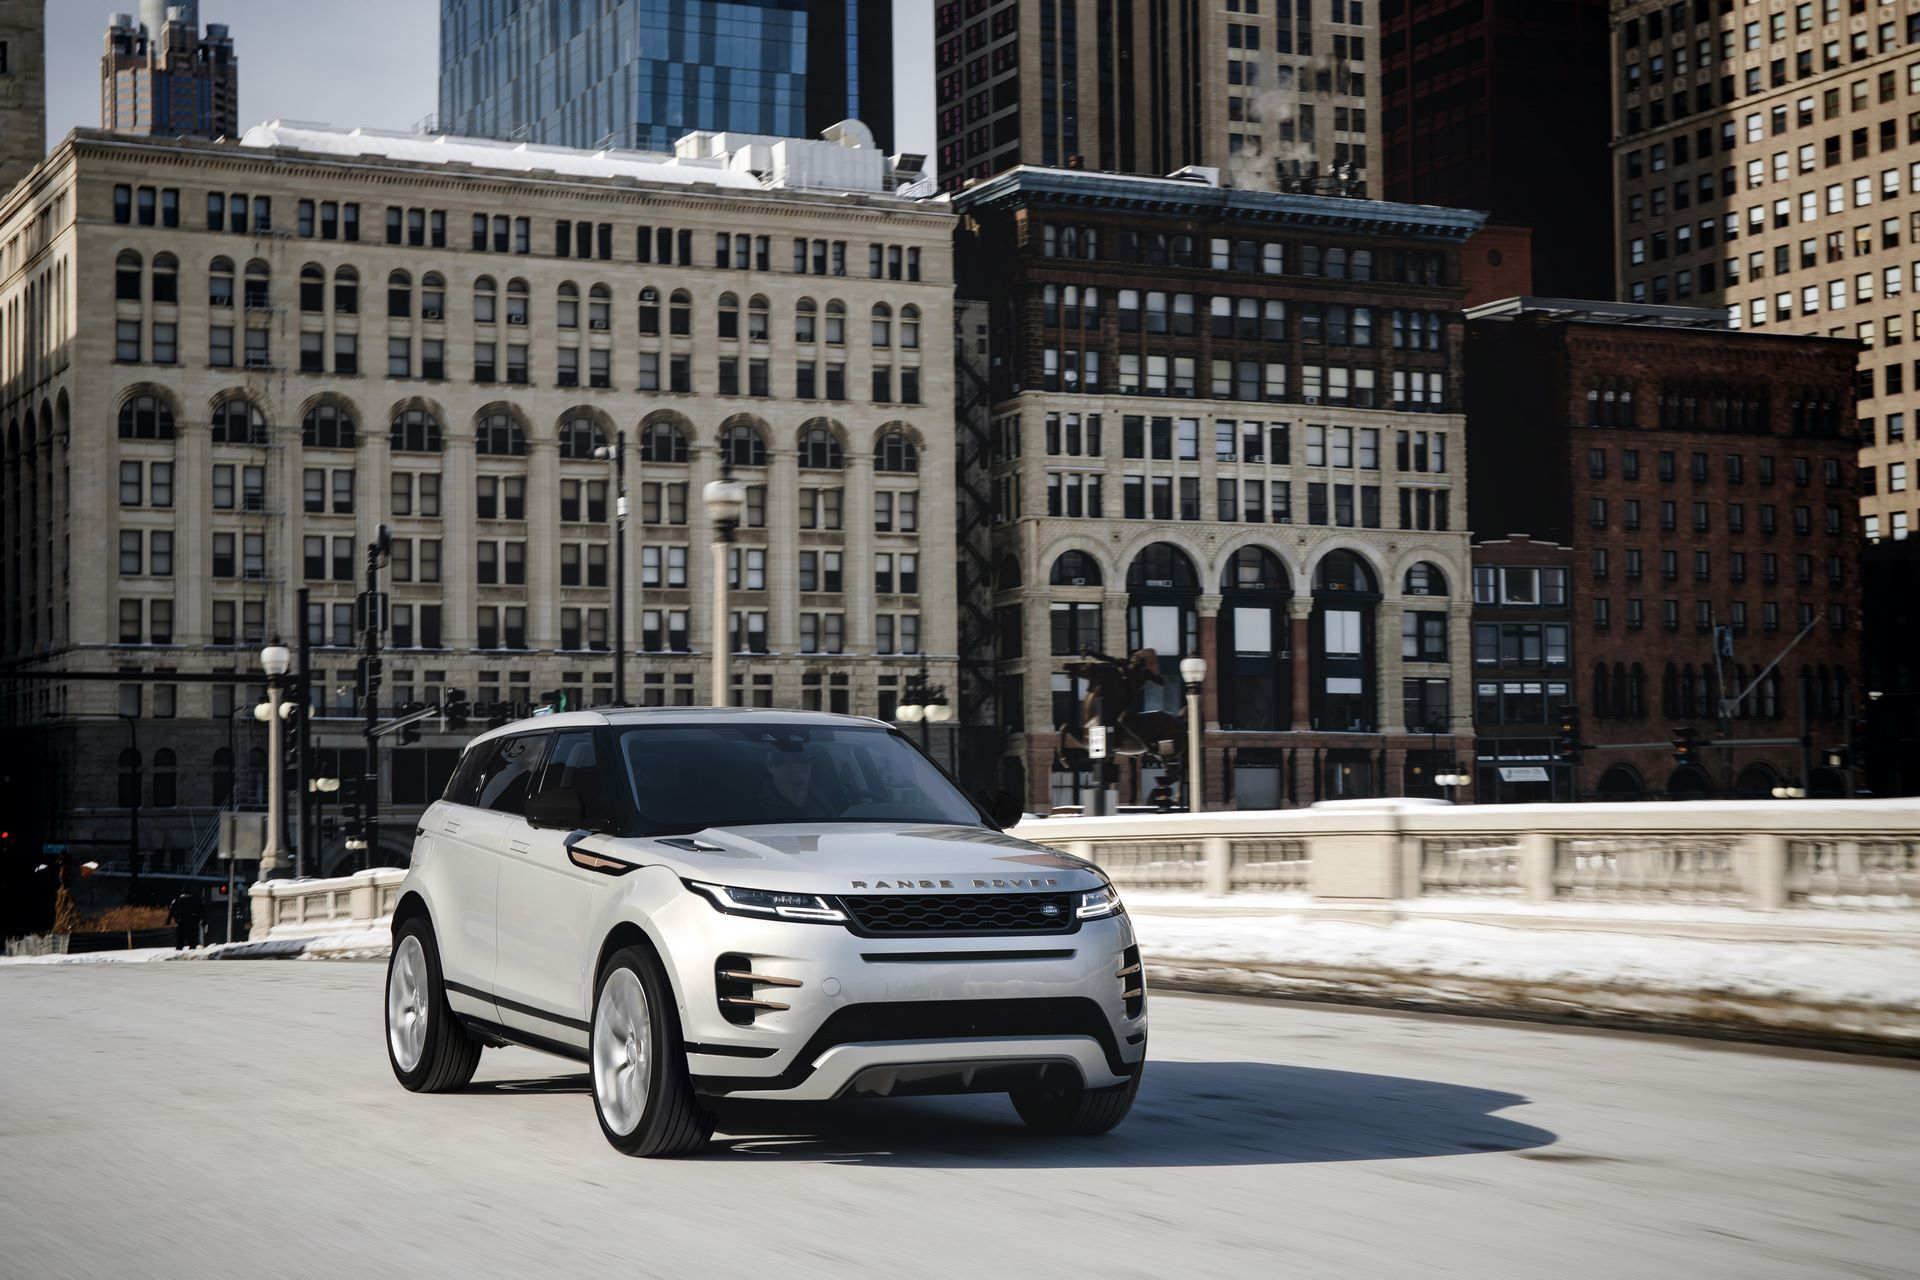 Range-Rover-Evoque-and-Land-Rover-Discovery-Sport-MHEV-diesel-28